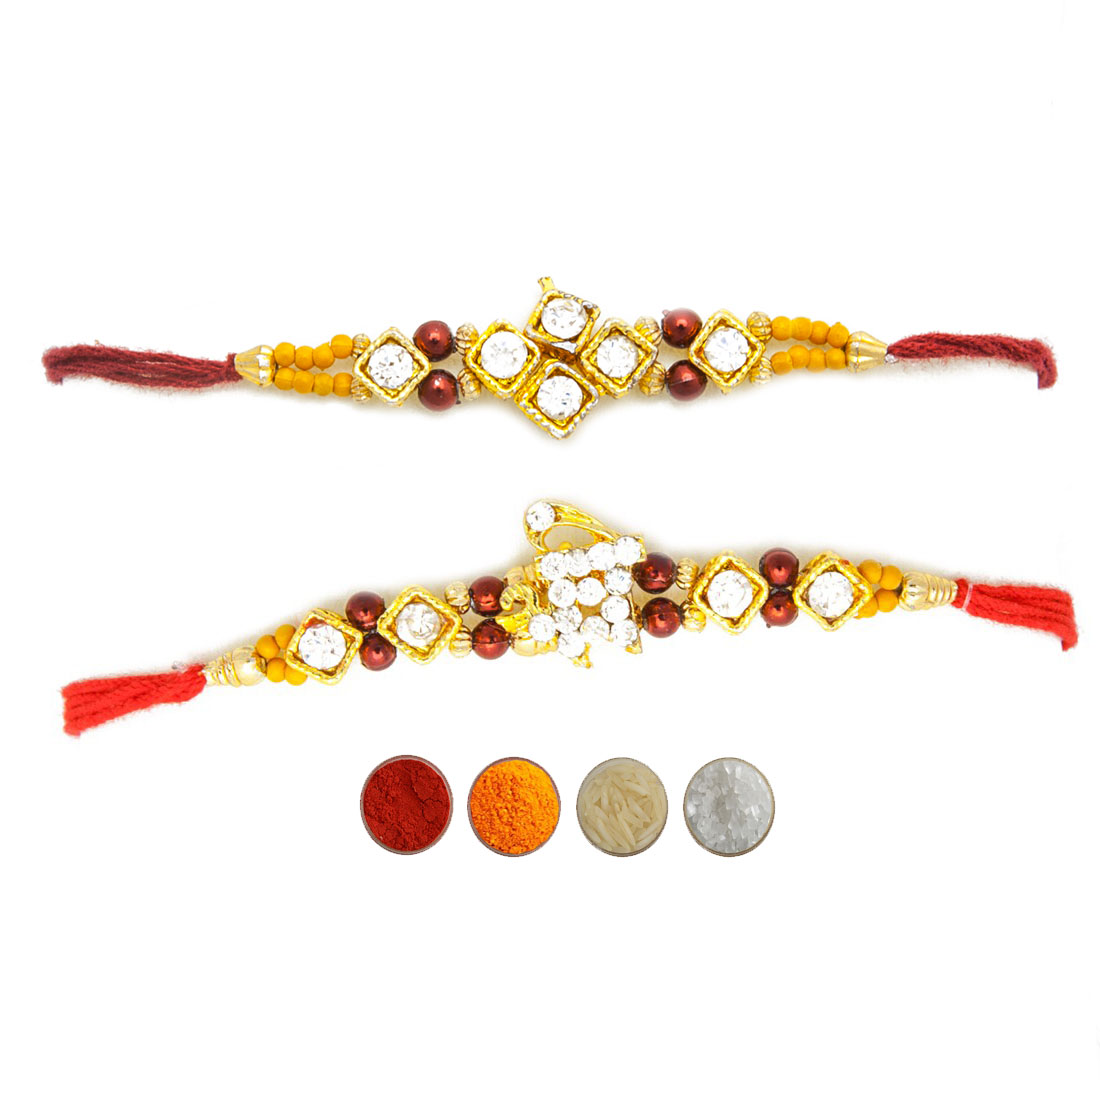 Stone and Beads Rakhi Set